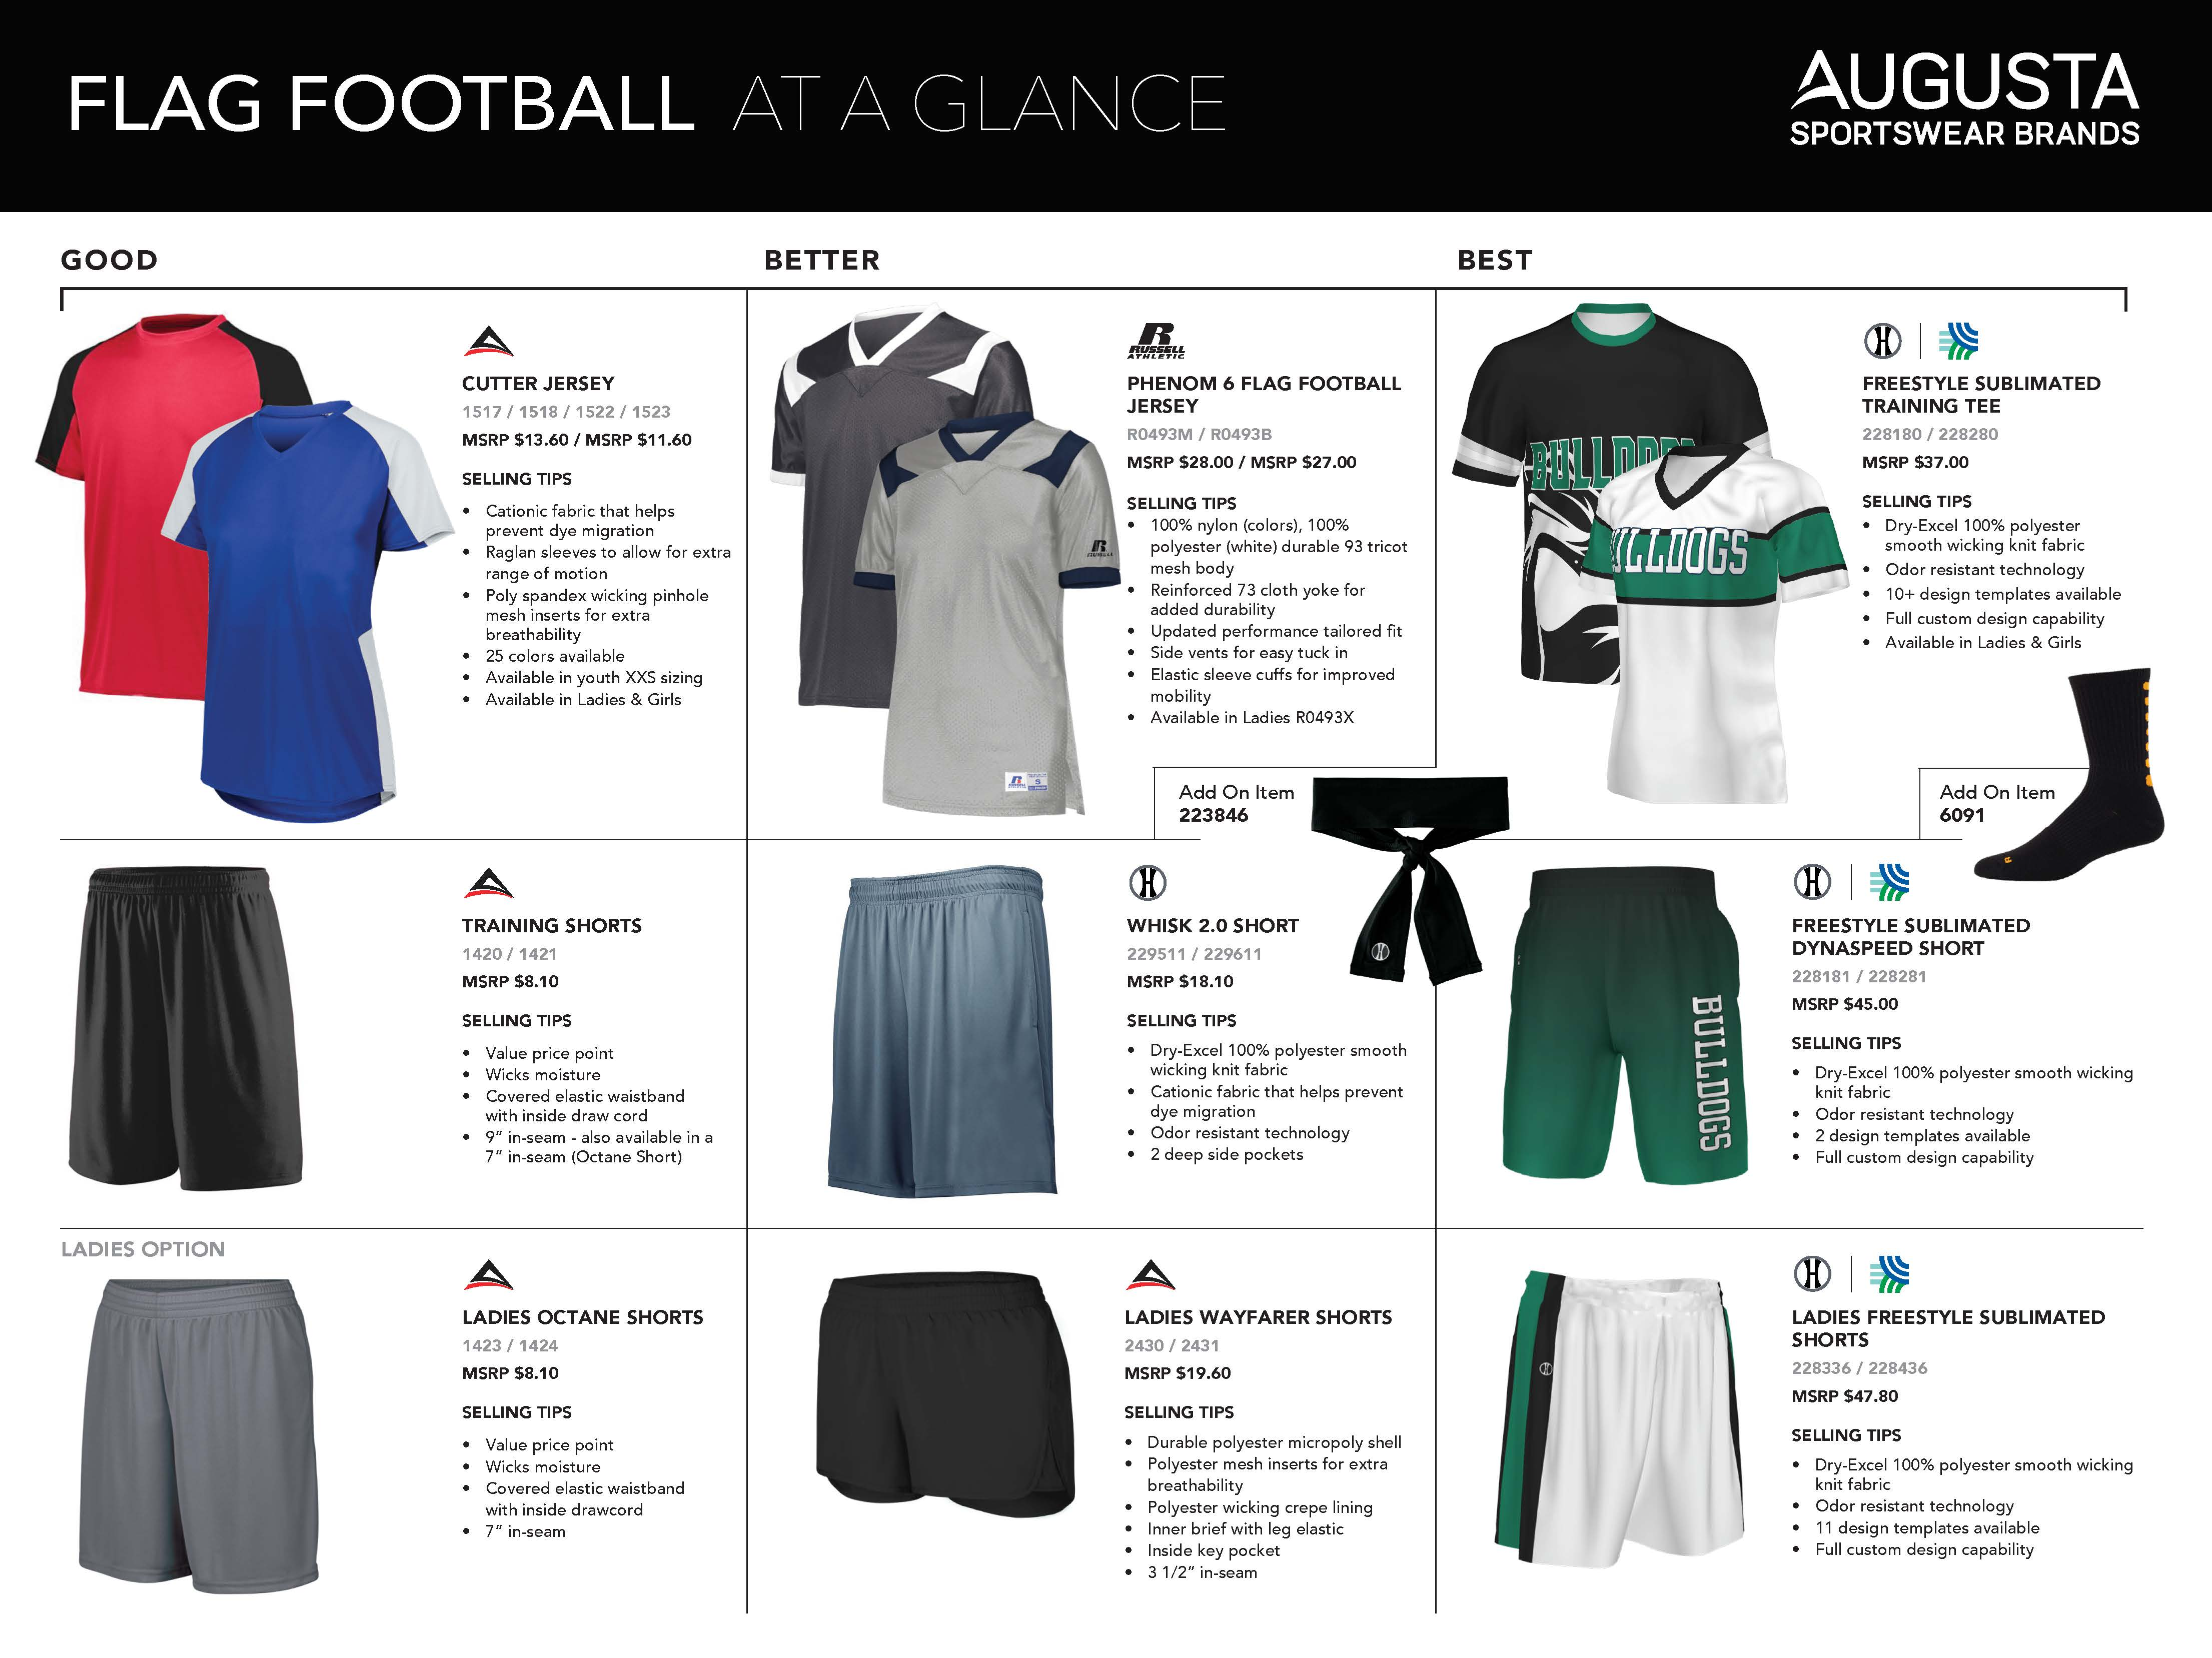 7v7 Football At a Glance flyer